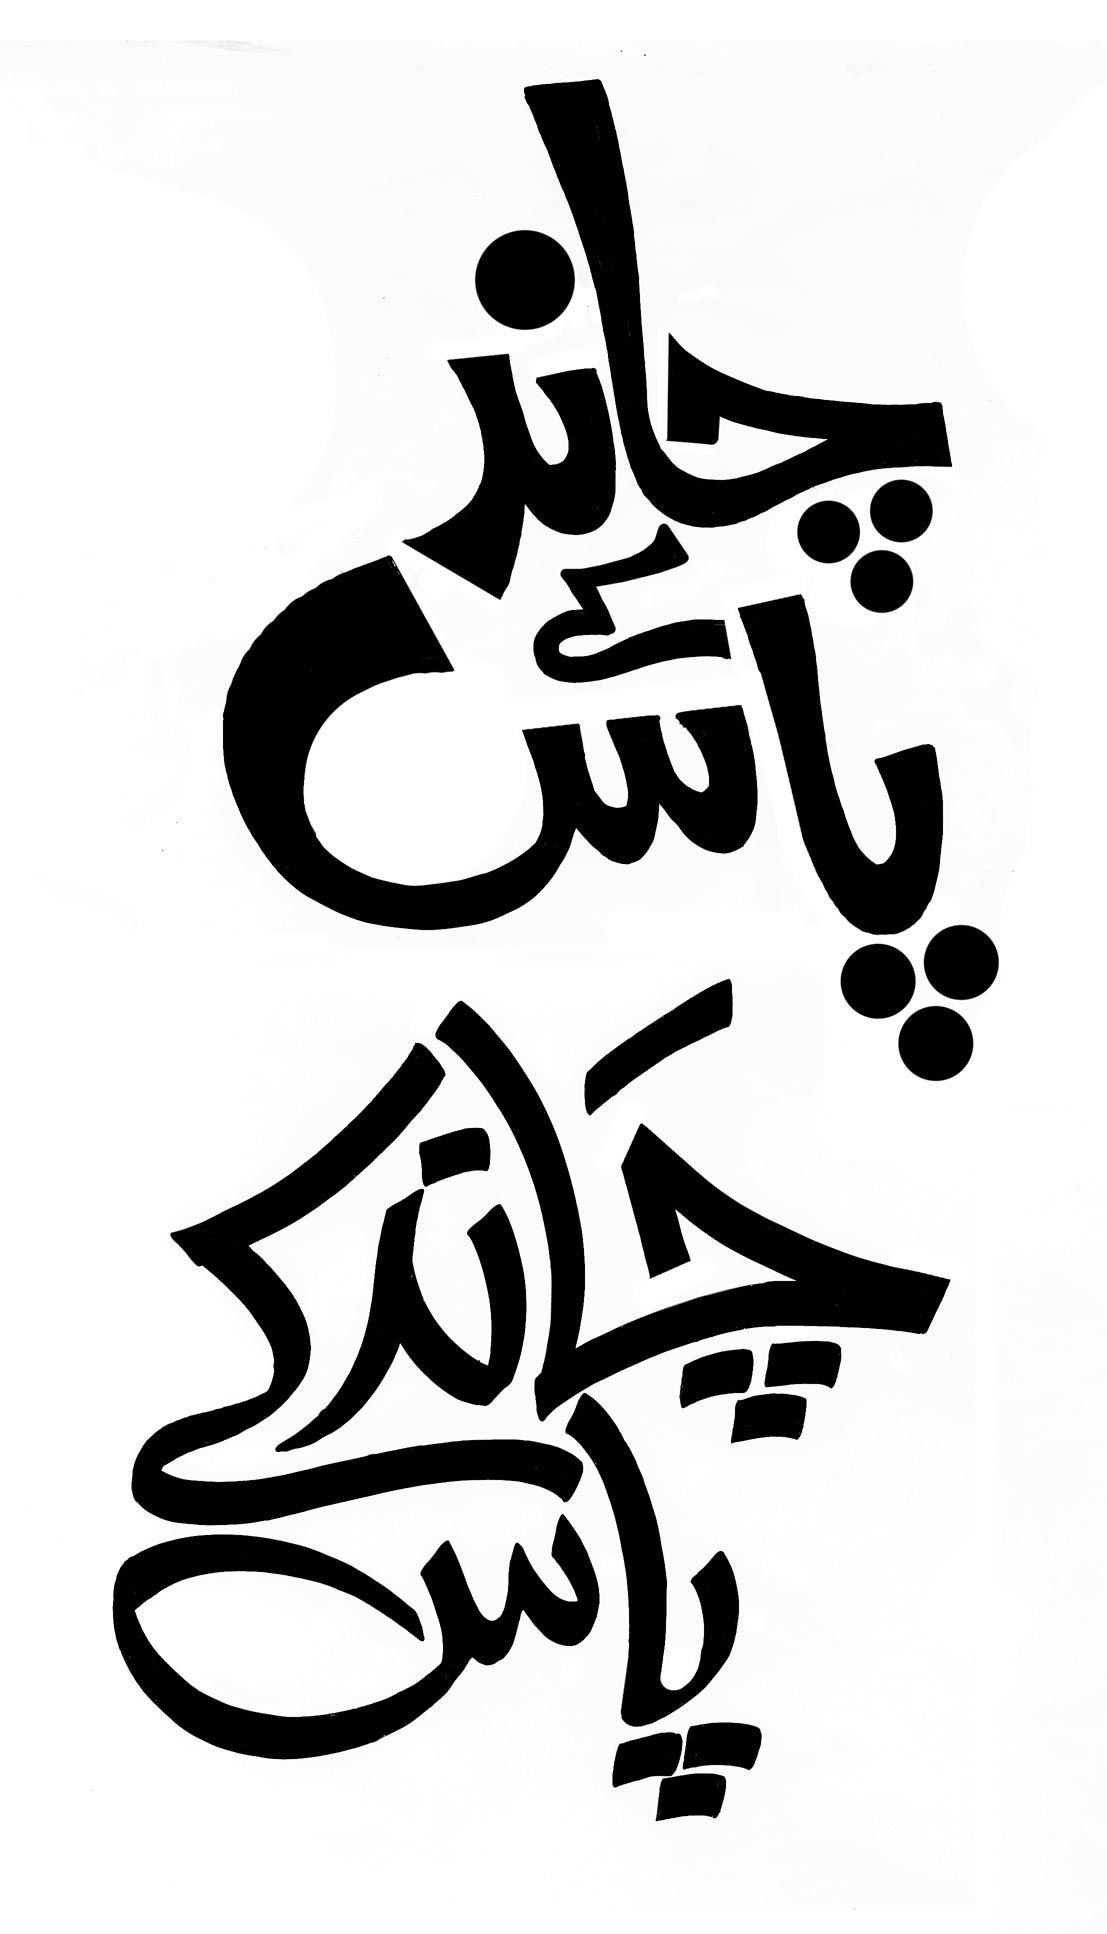 Javed Aslam 39 S Calligraphy Chand K Pass Calligraphy